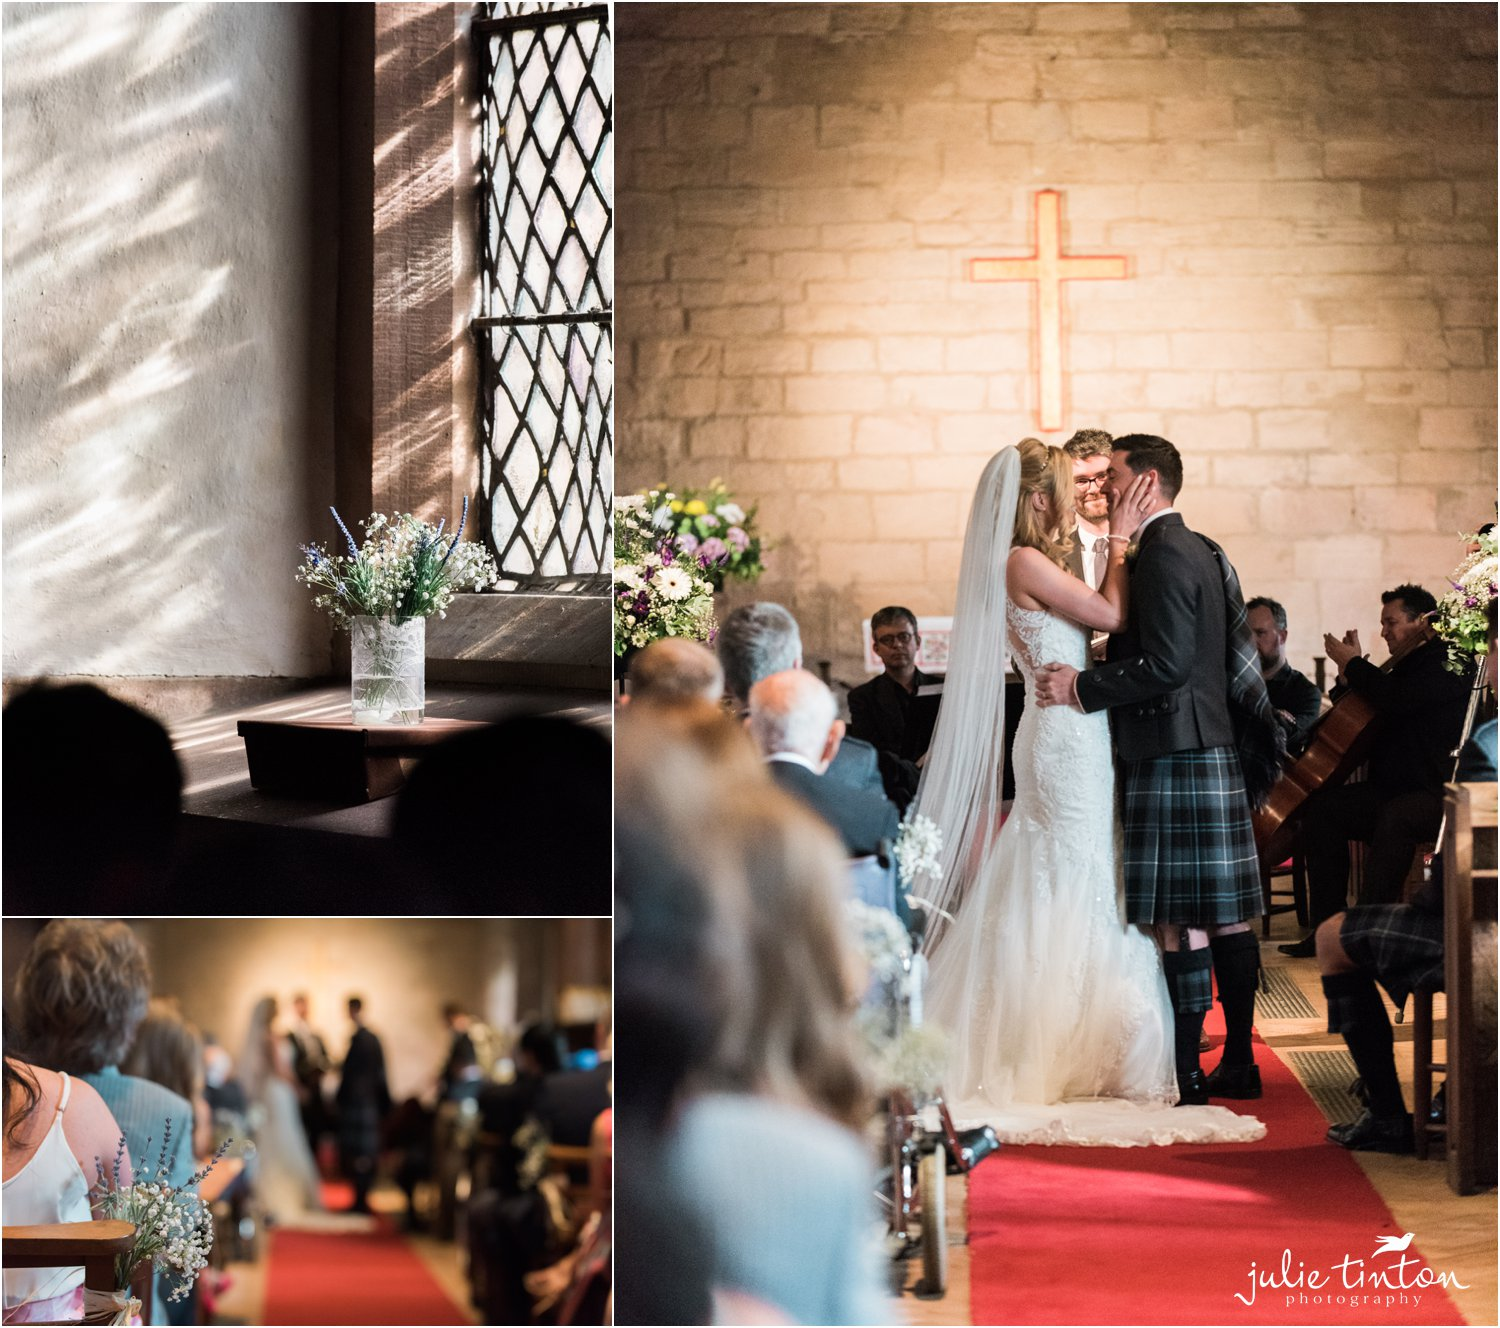 montage of bride and groom during their ceremony in church